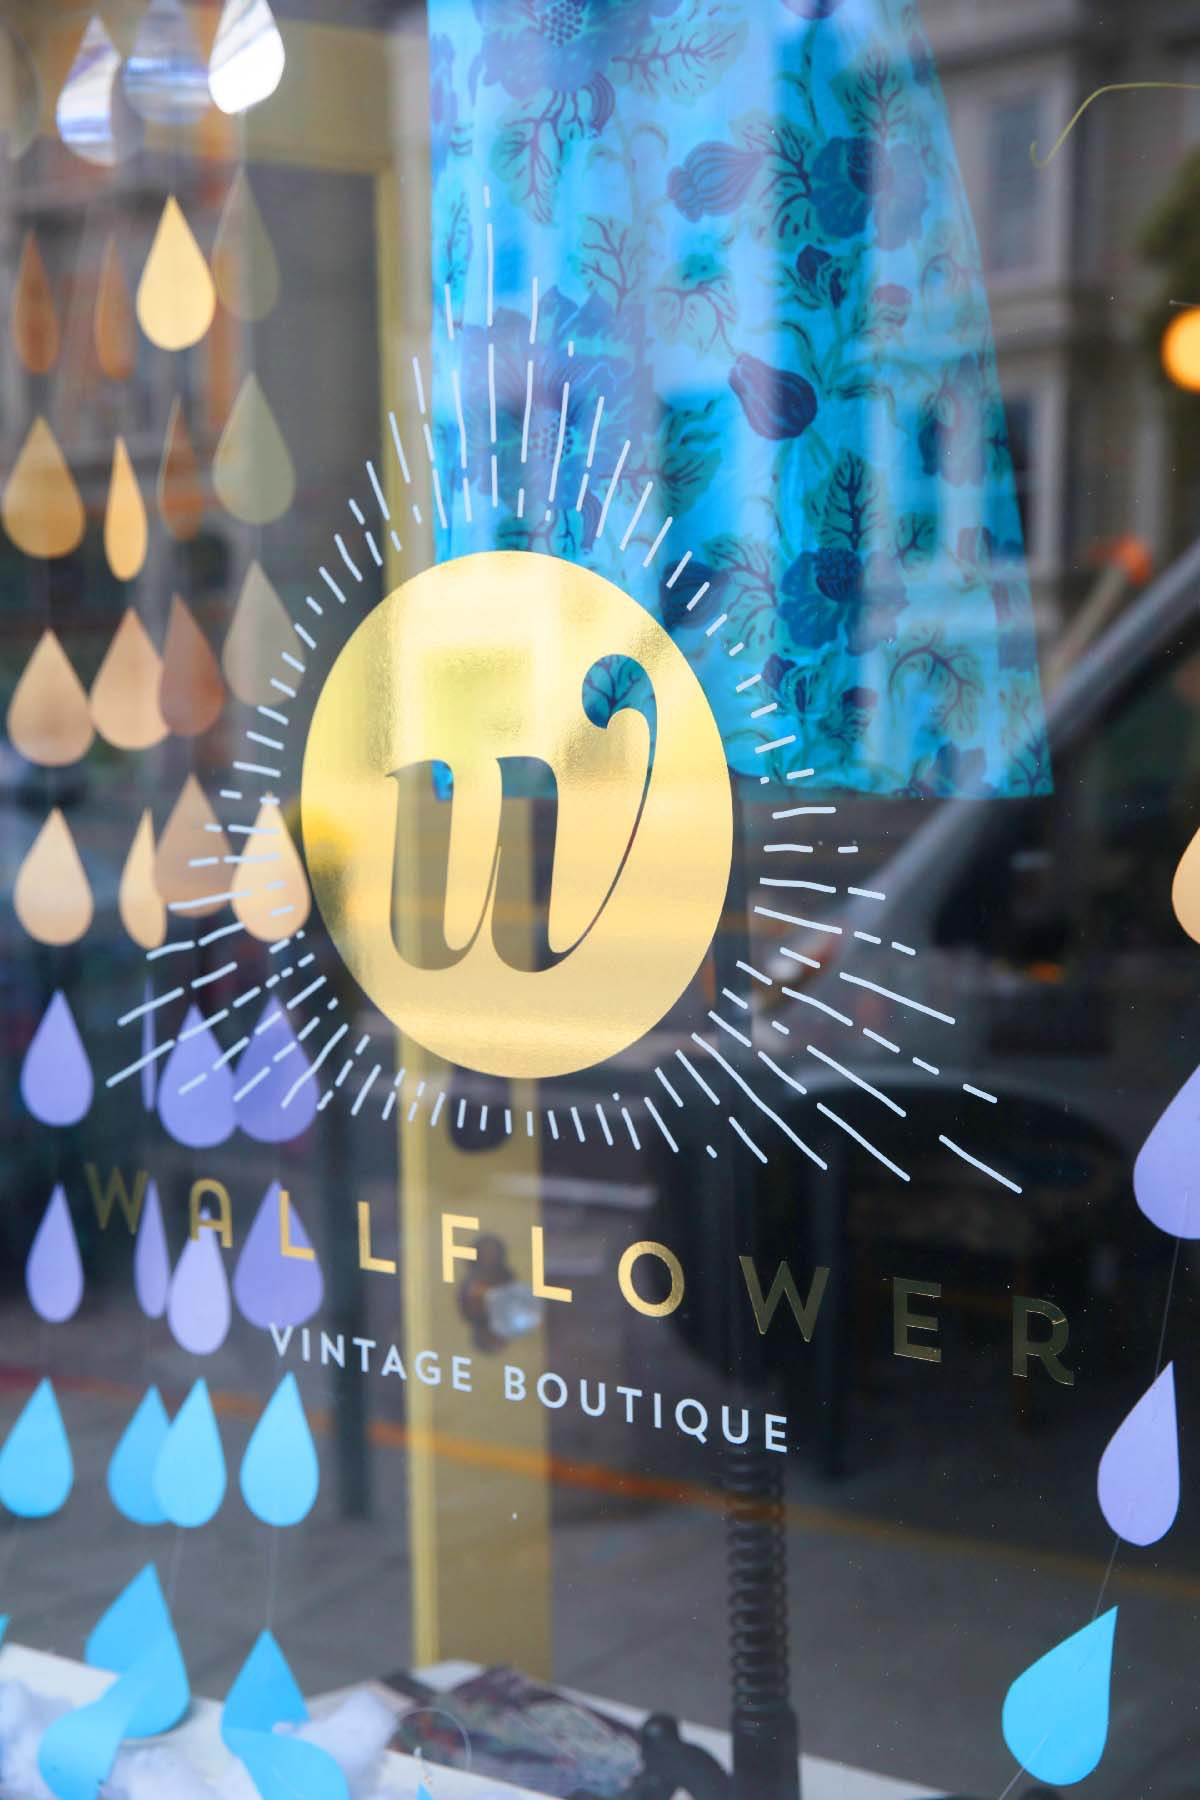 Wallflower Boutique